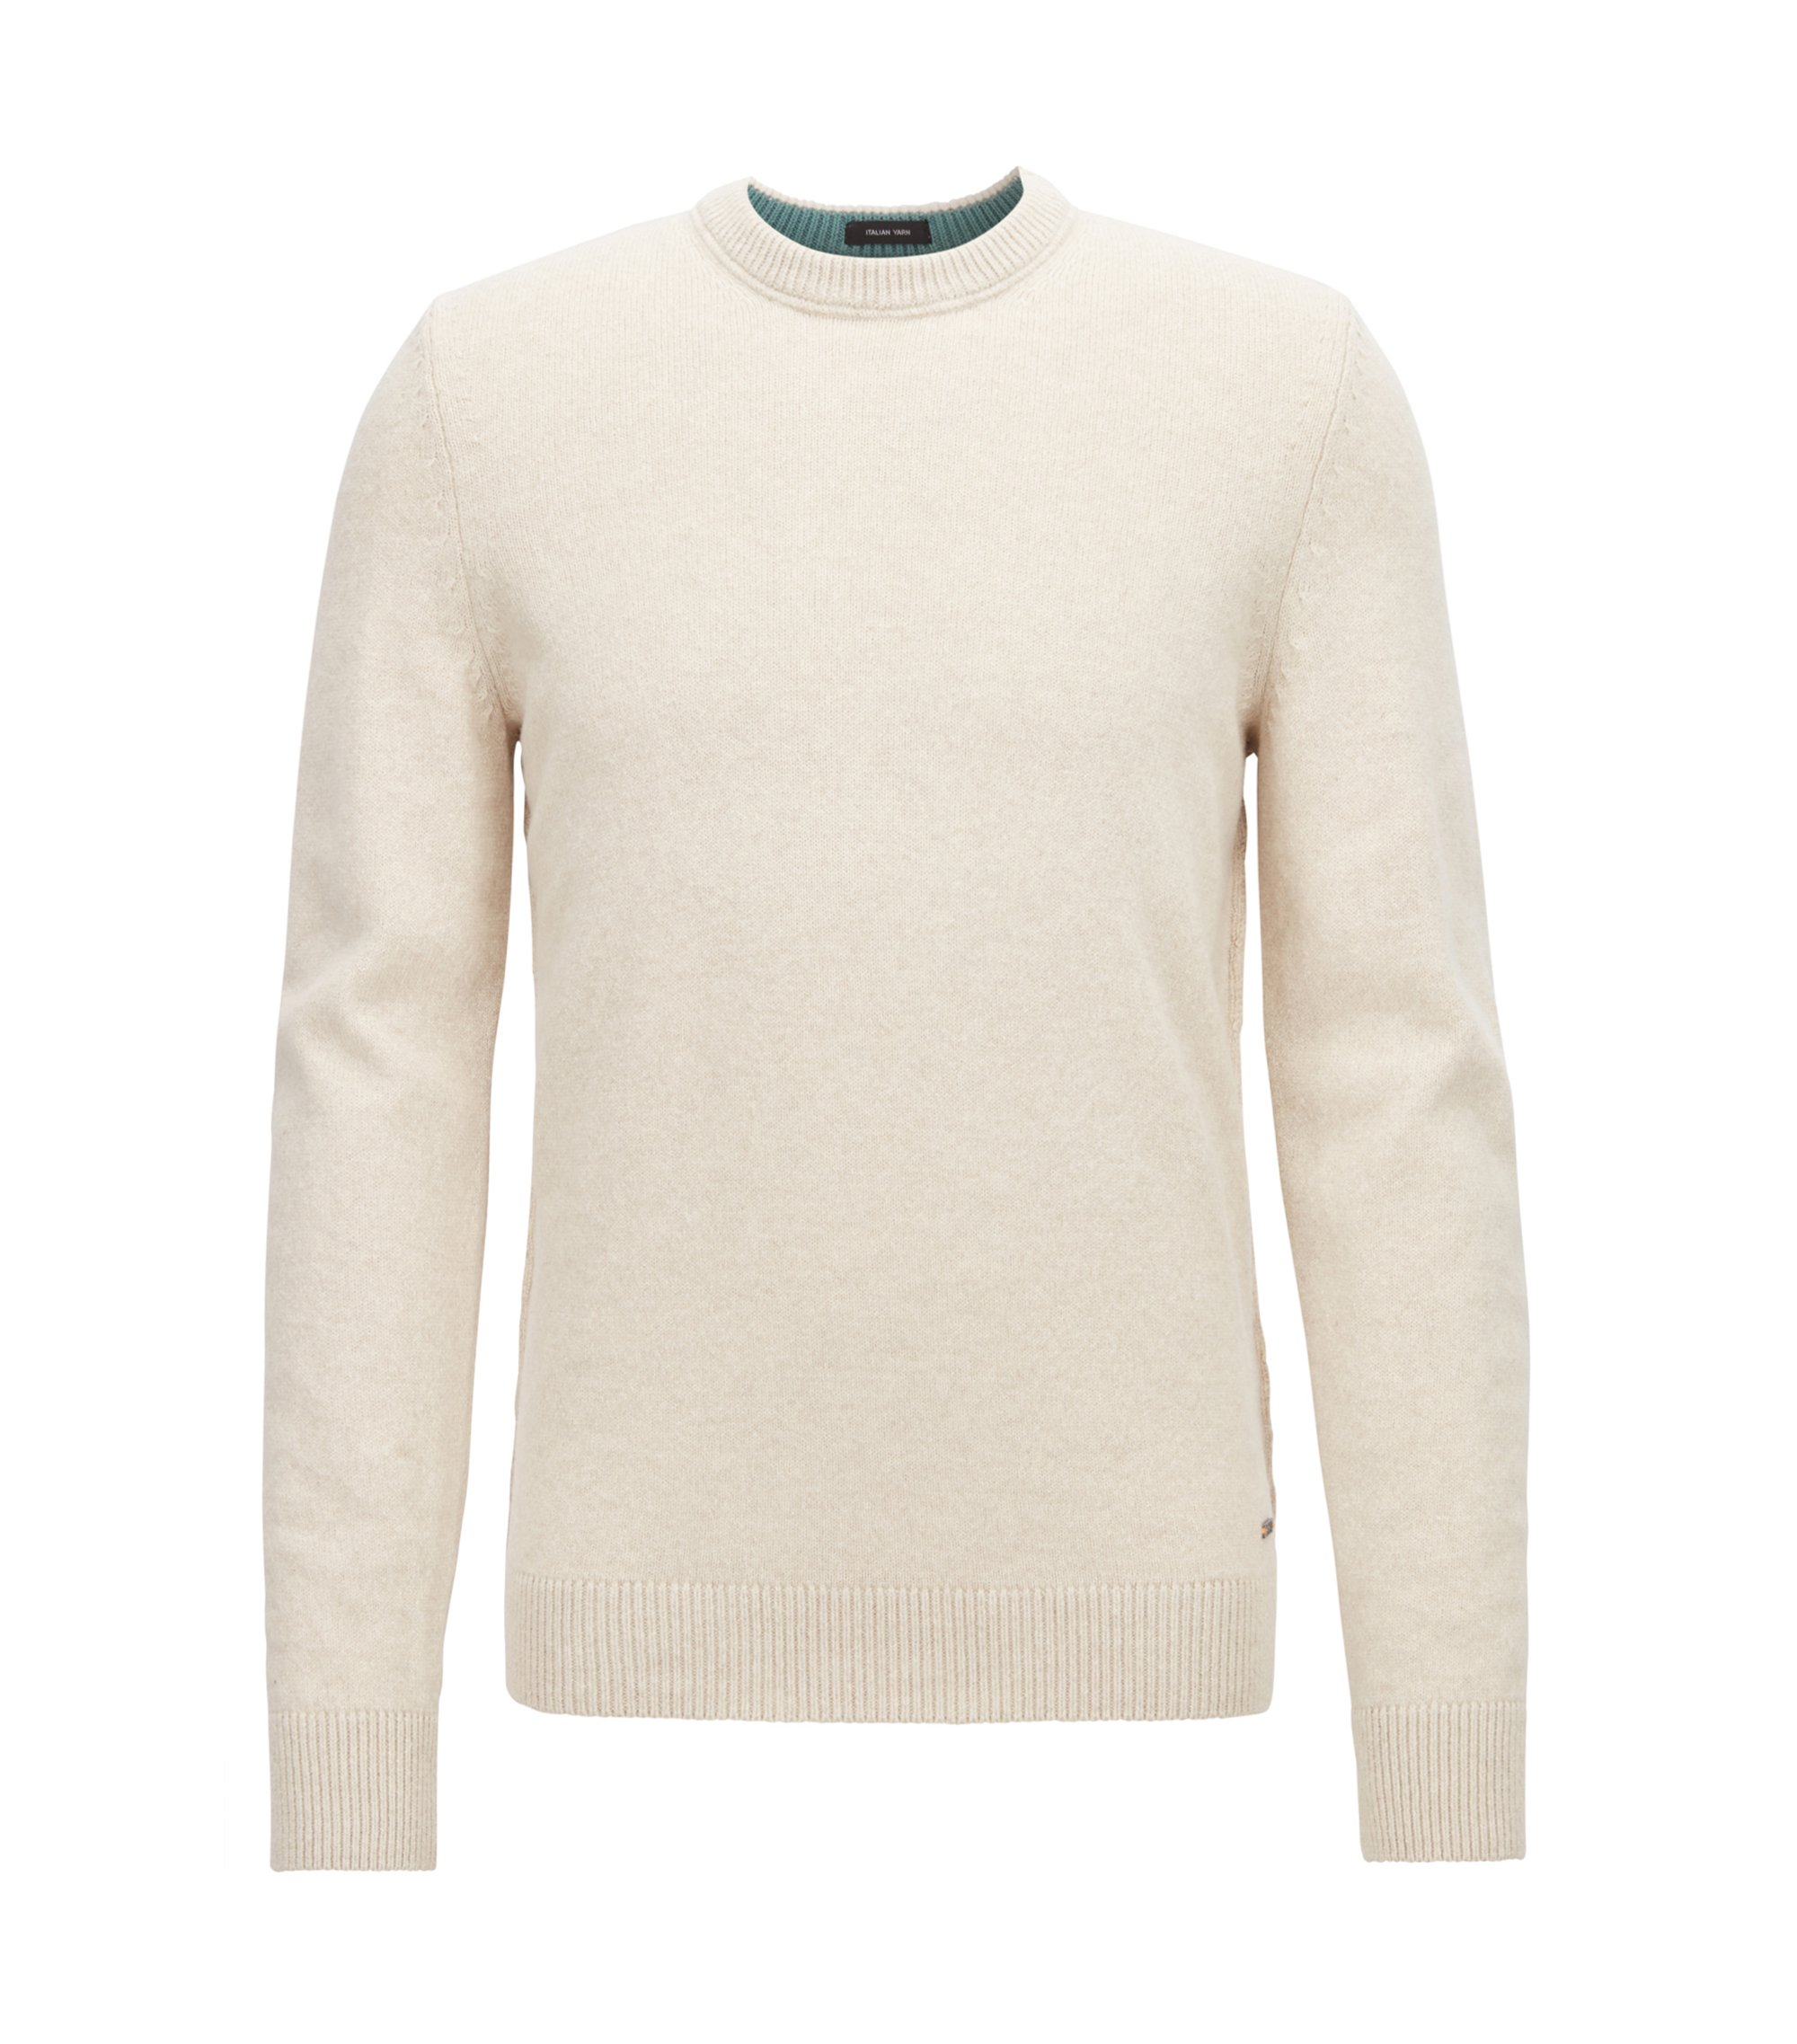 Crew-neck sweater in an Italian wool-cotton blend, Beige